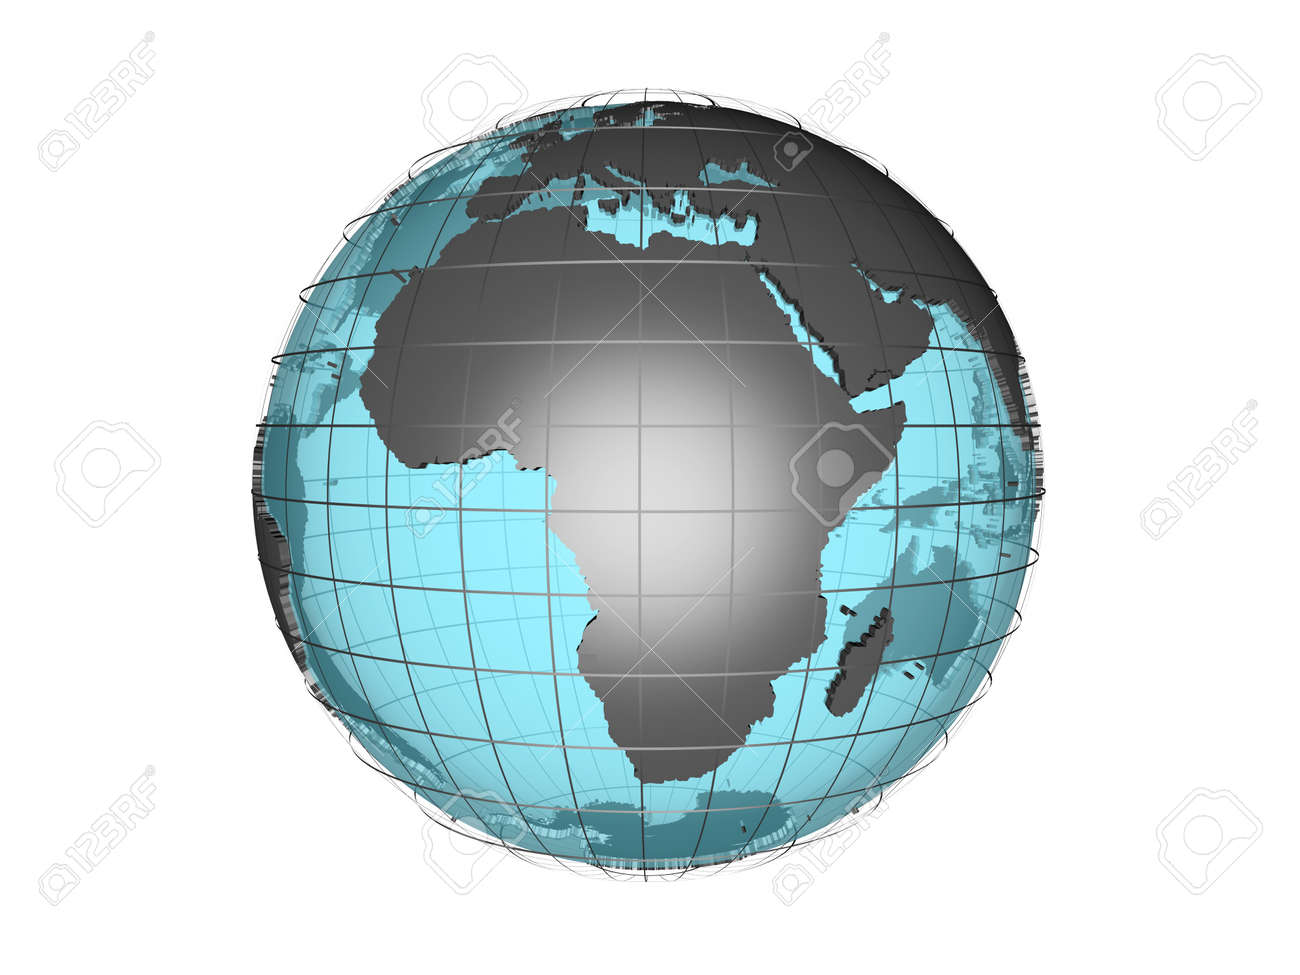 3D Model Of Globe Map Showing Africa Continent Stock Photo